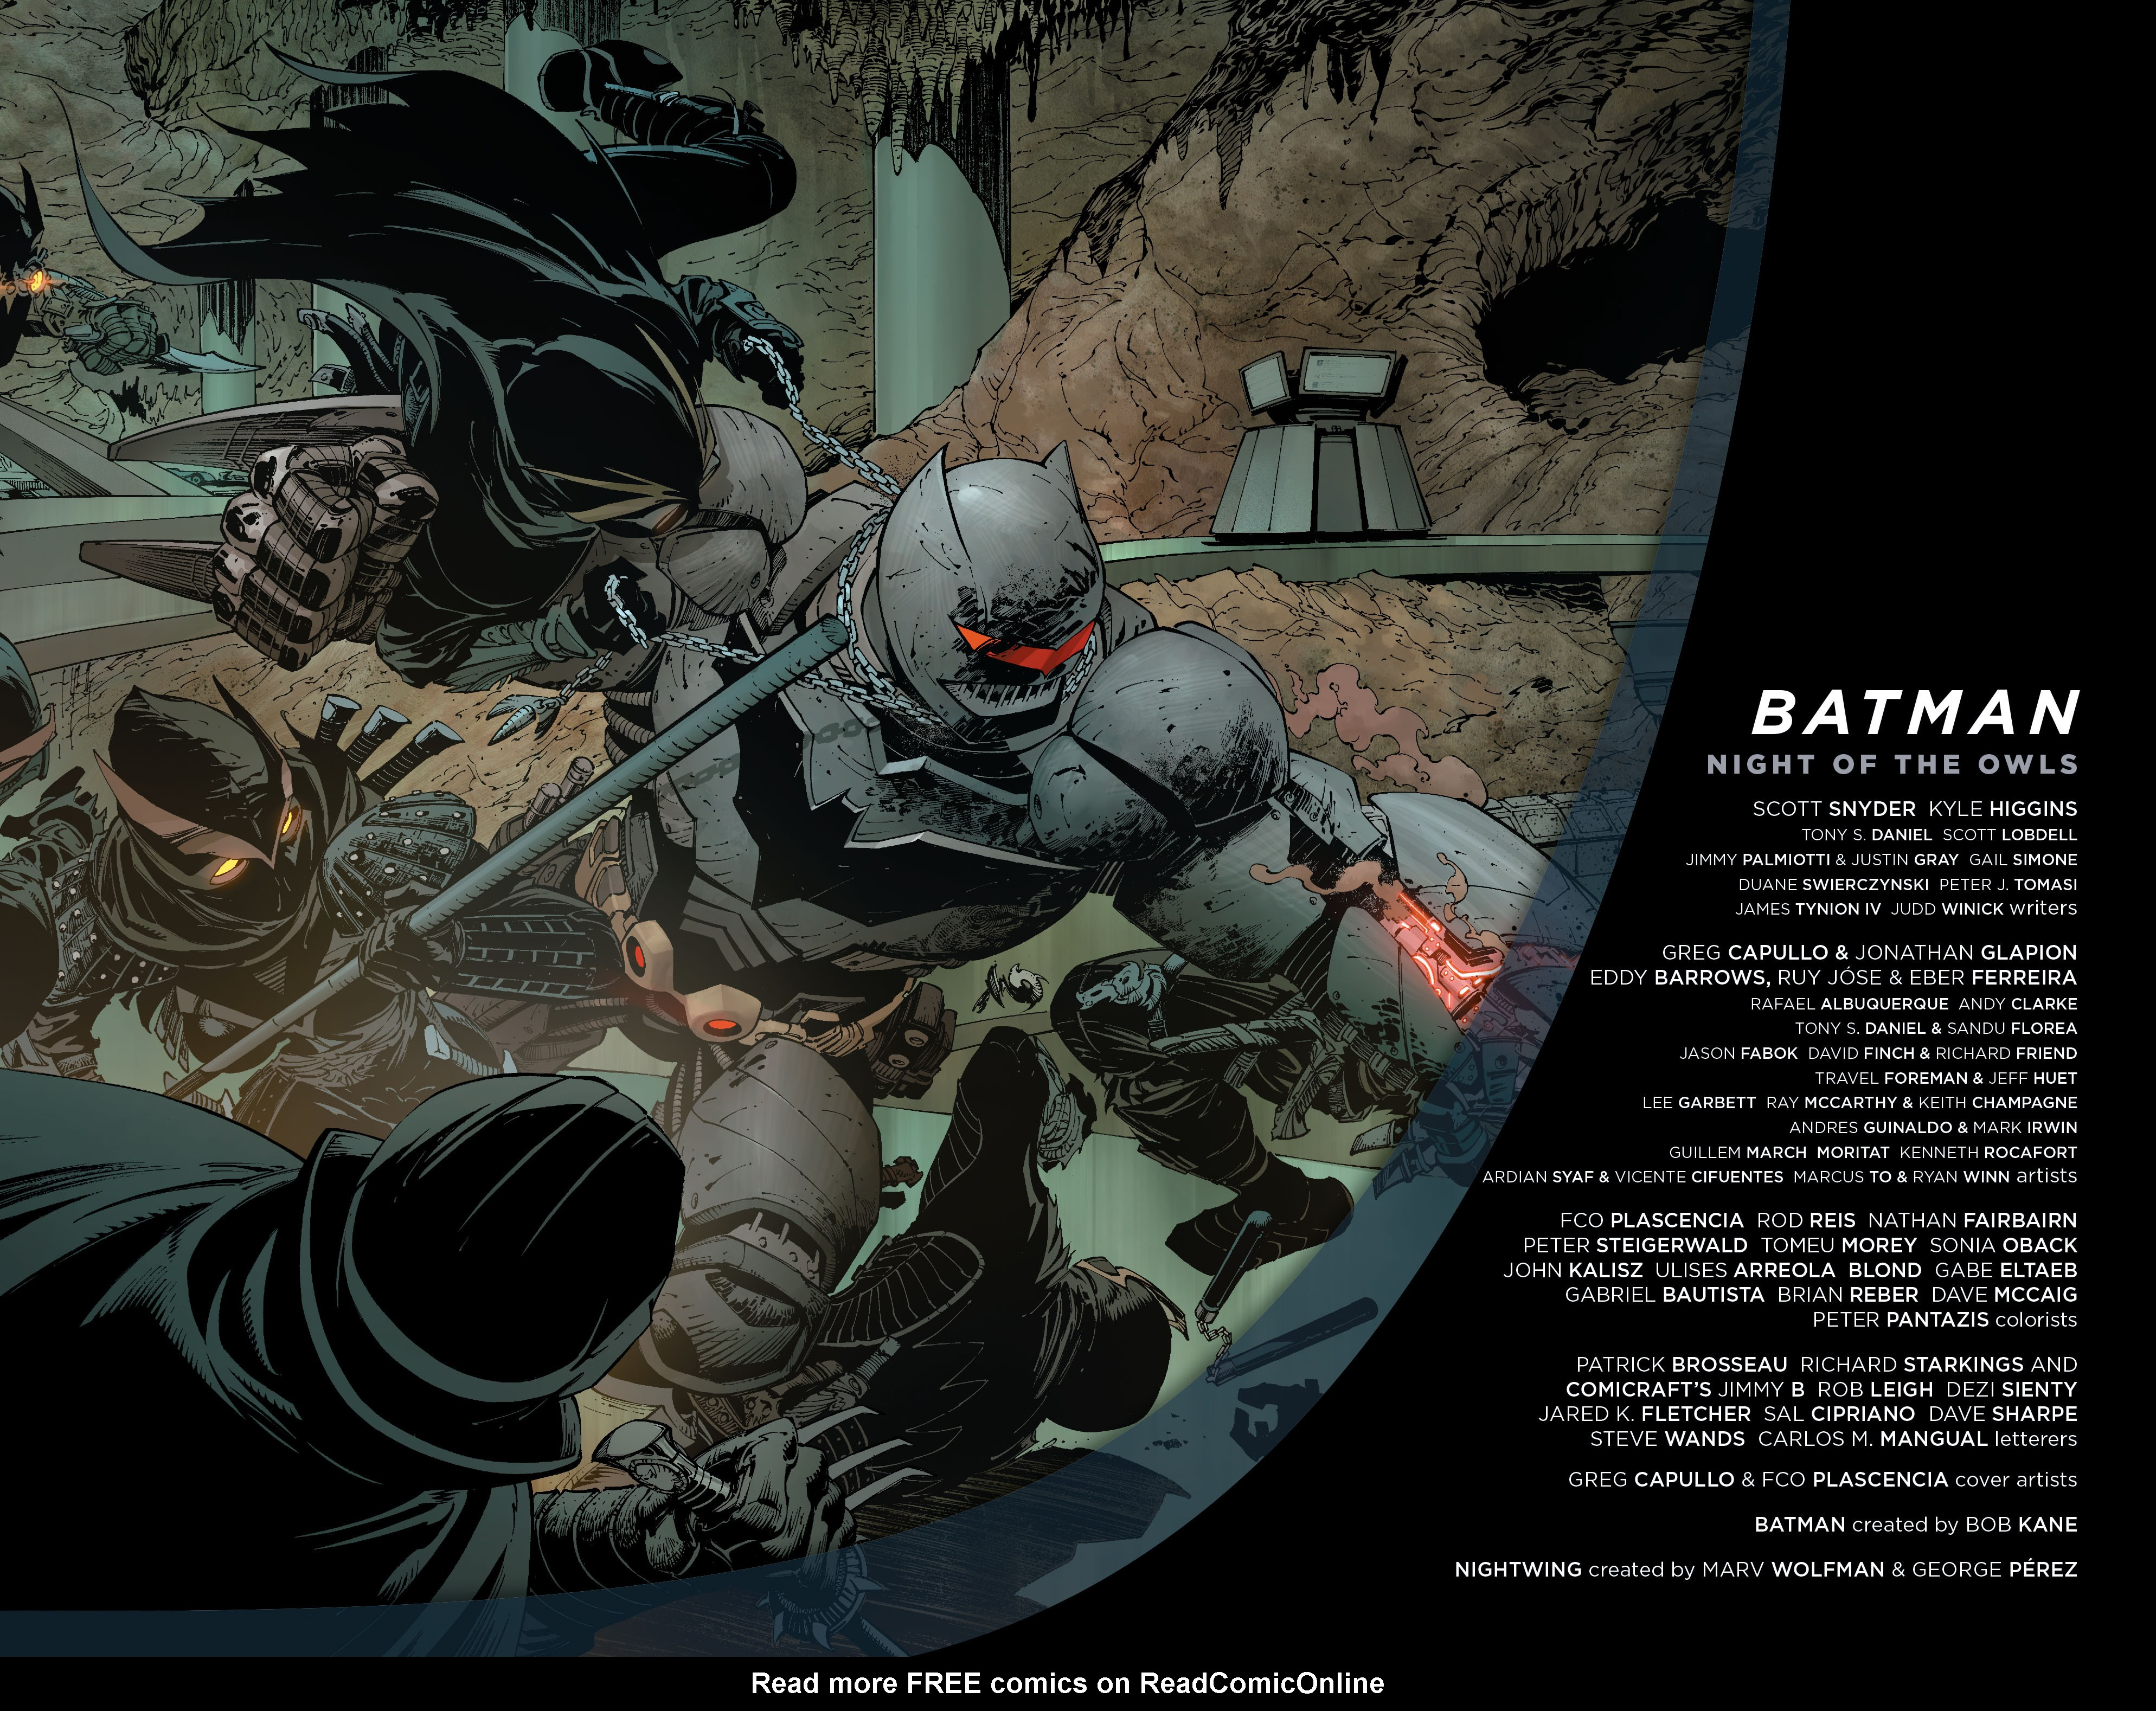 Batman: Night of the Owls Full Page 3